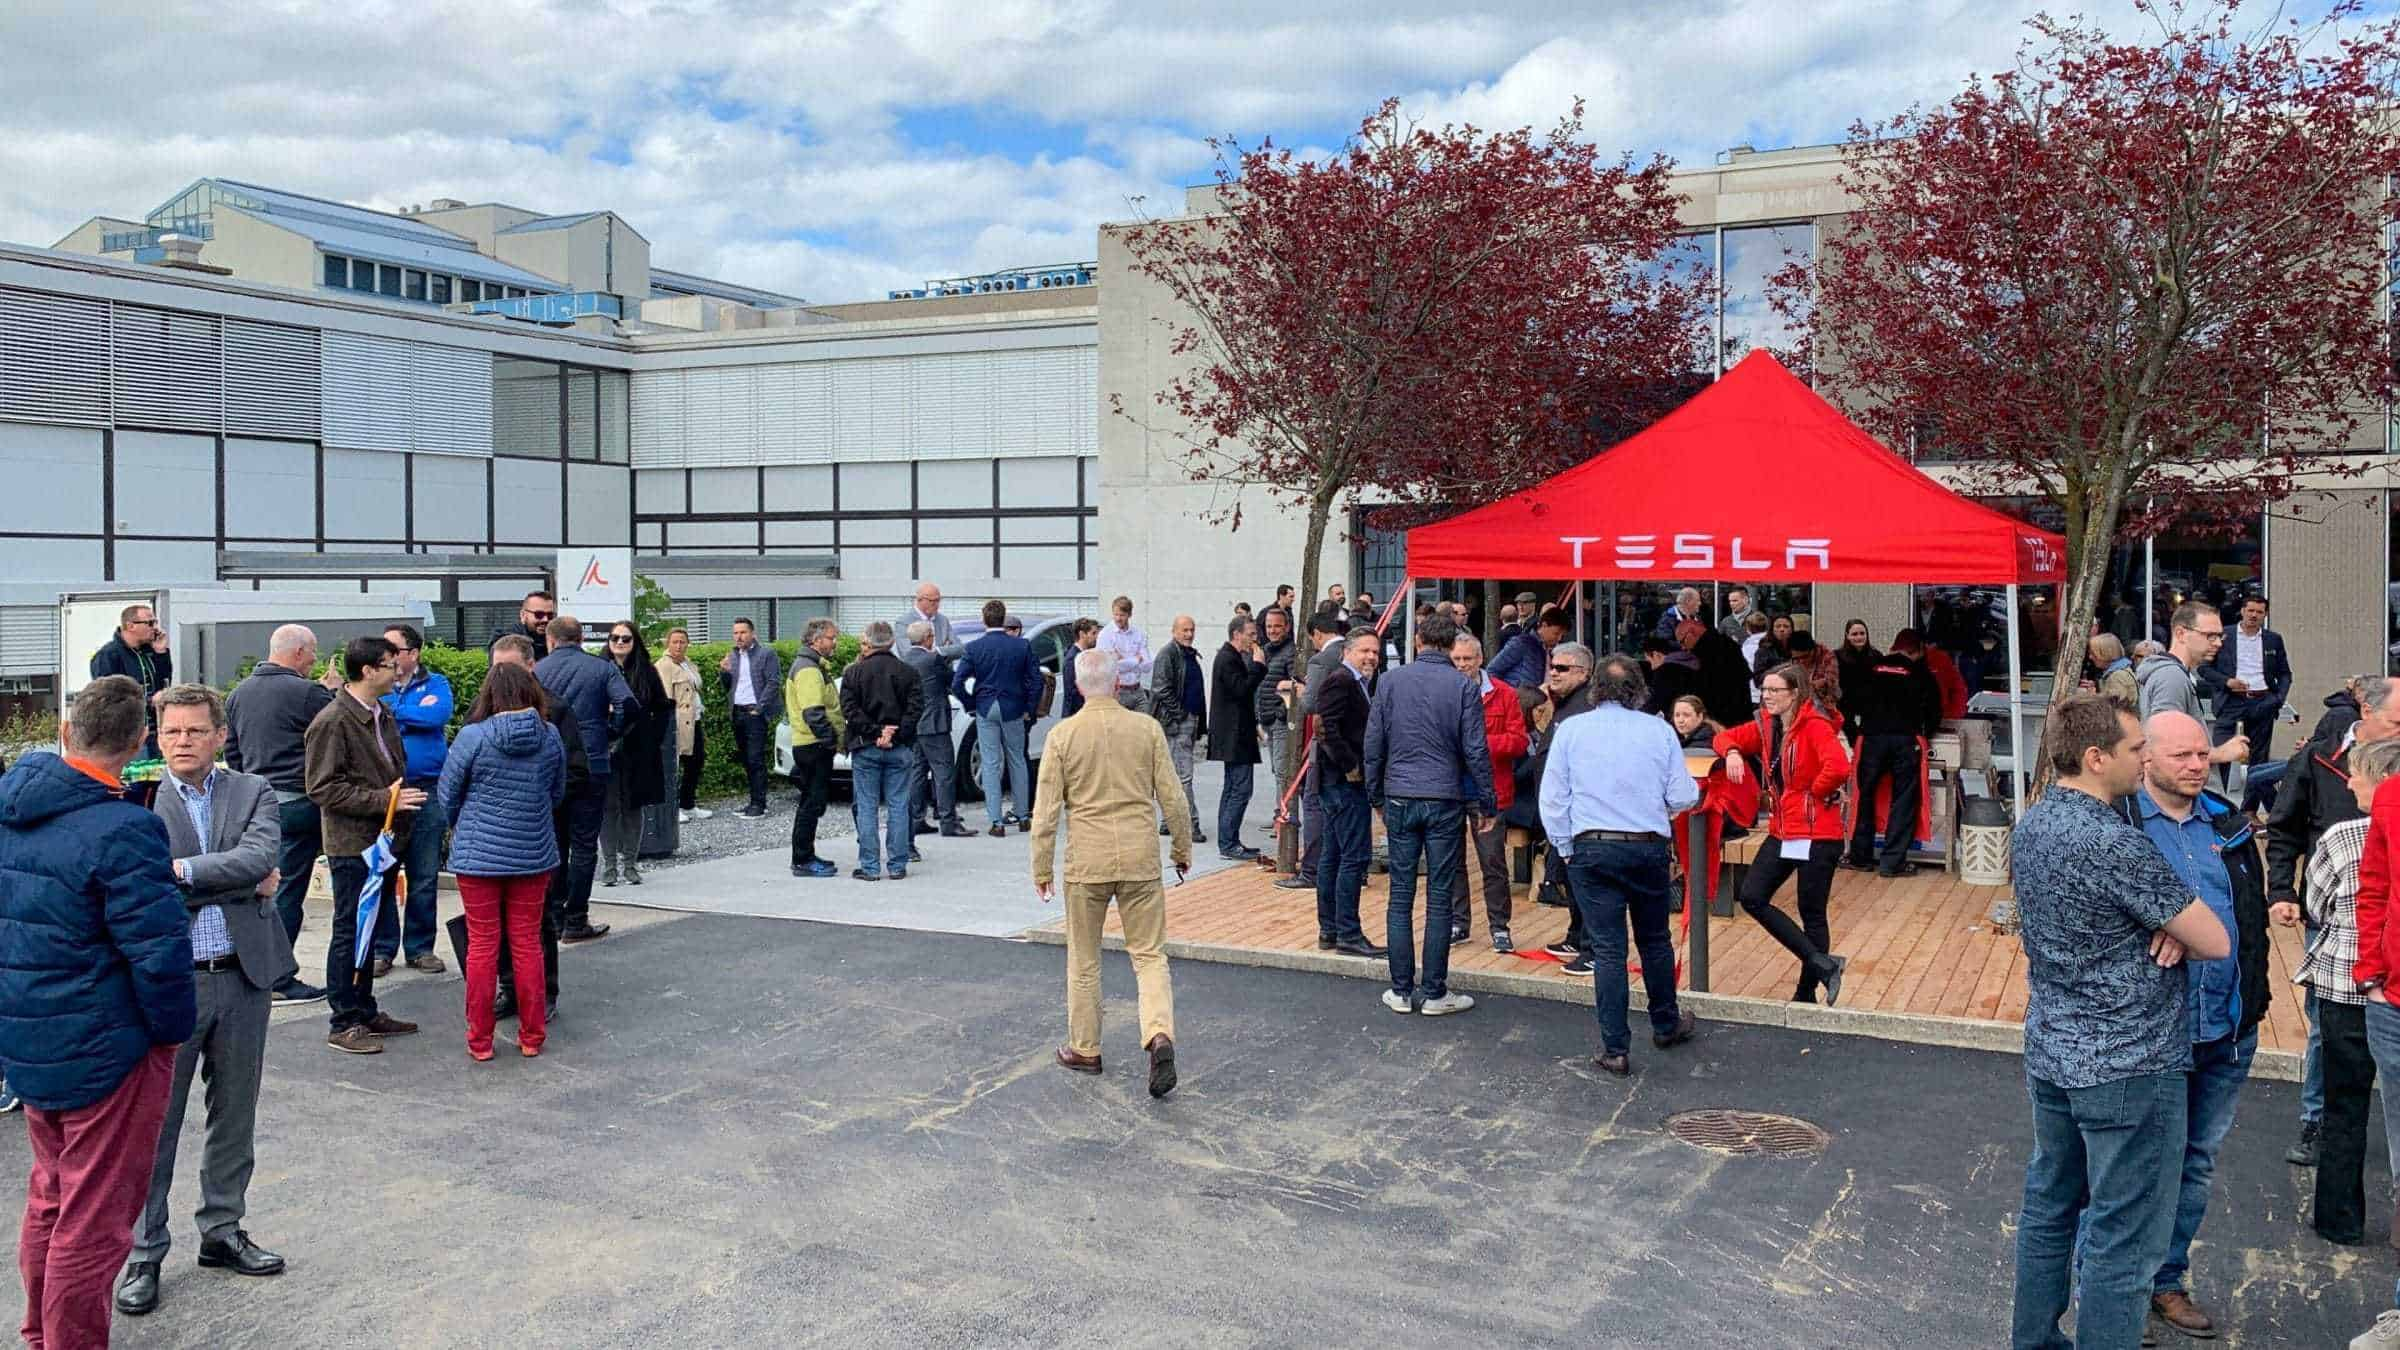 Techgarage Tesla Supercharger Dietikon Eröffnung Crowd Cut